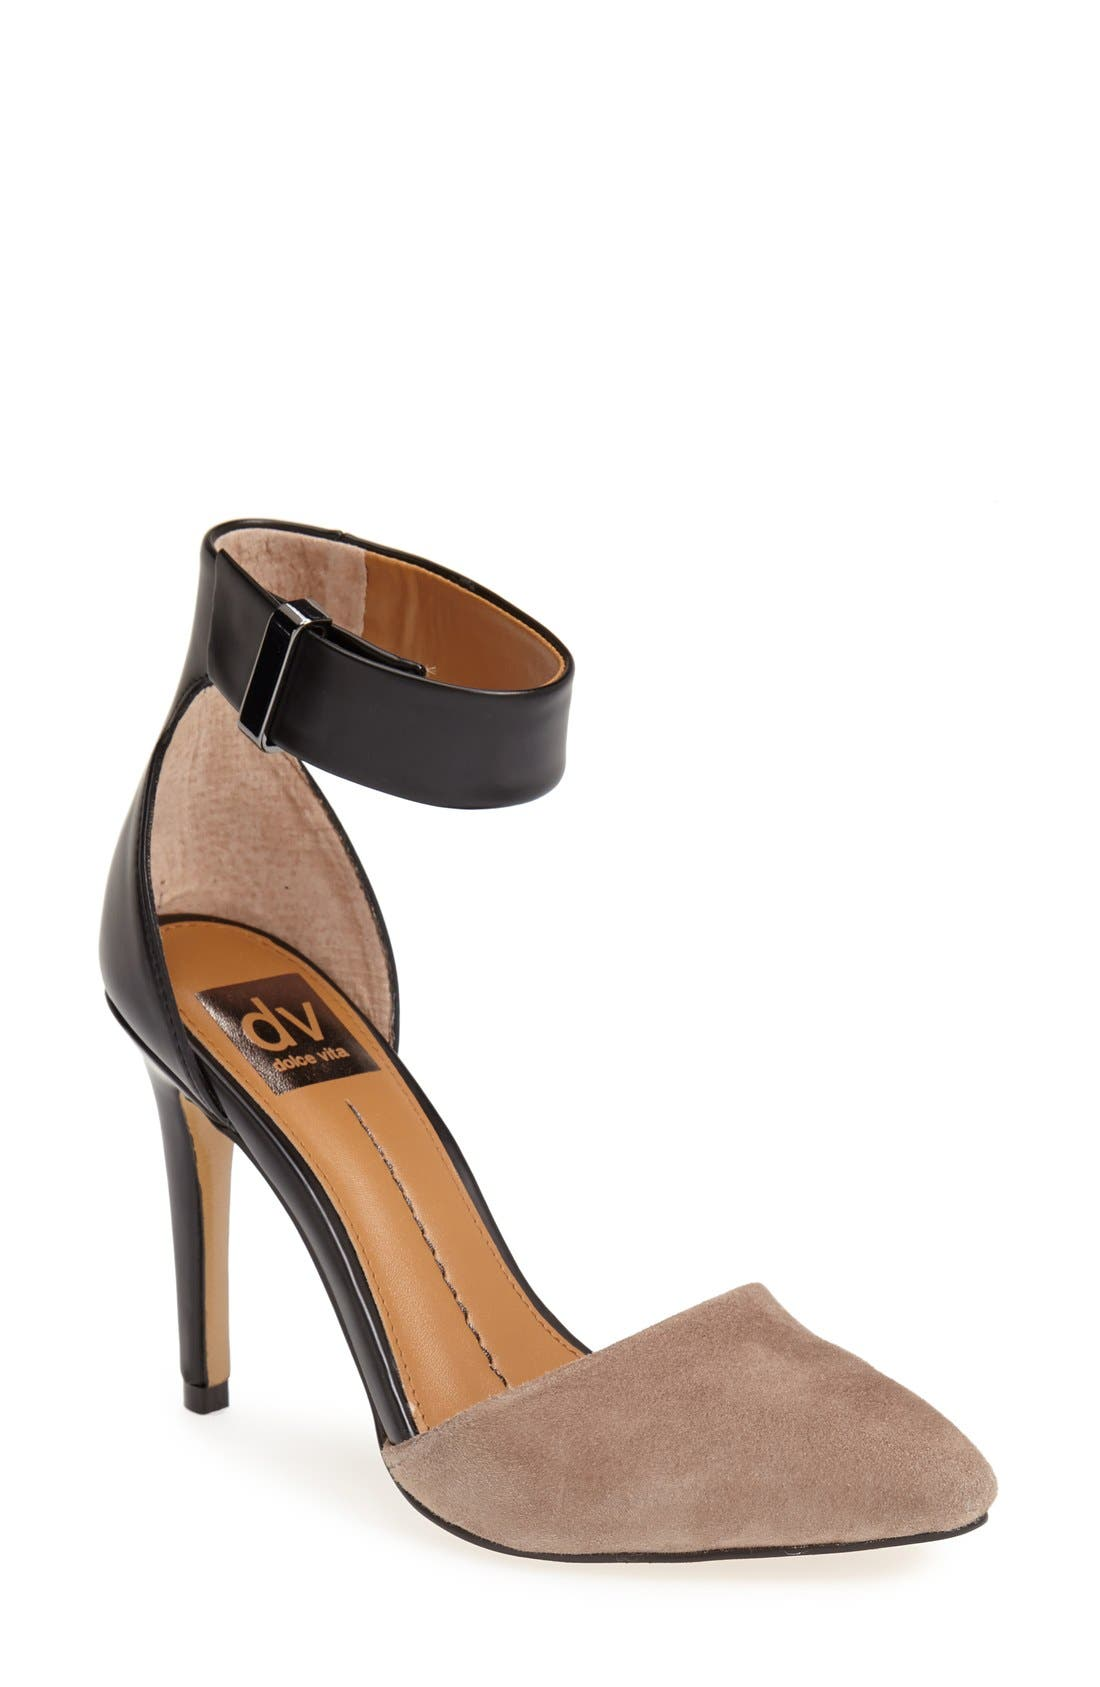 Alternate Image 1 Selected - DV by Dolce Vita 'Odetta' Pump (Women)